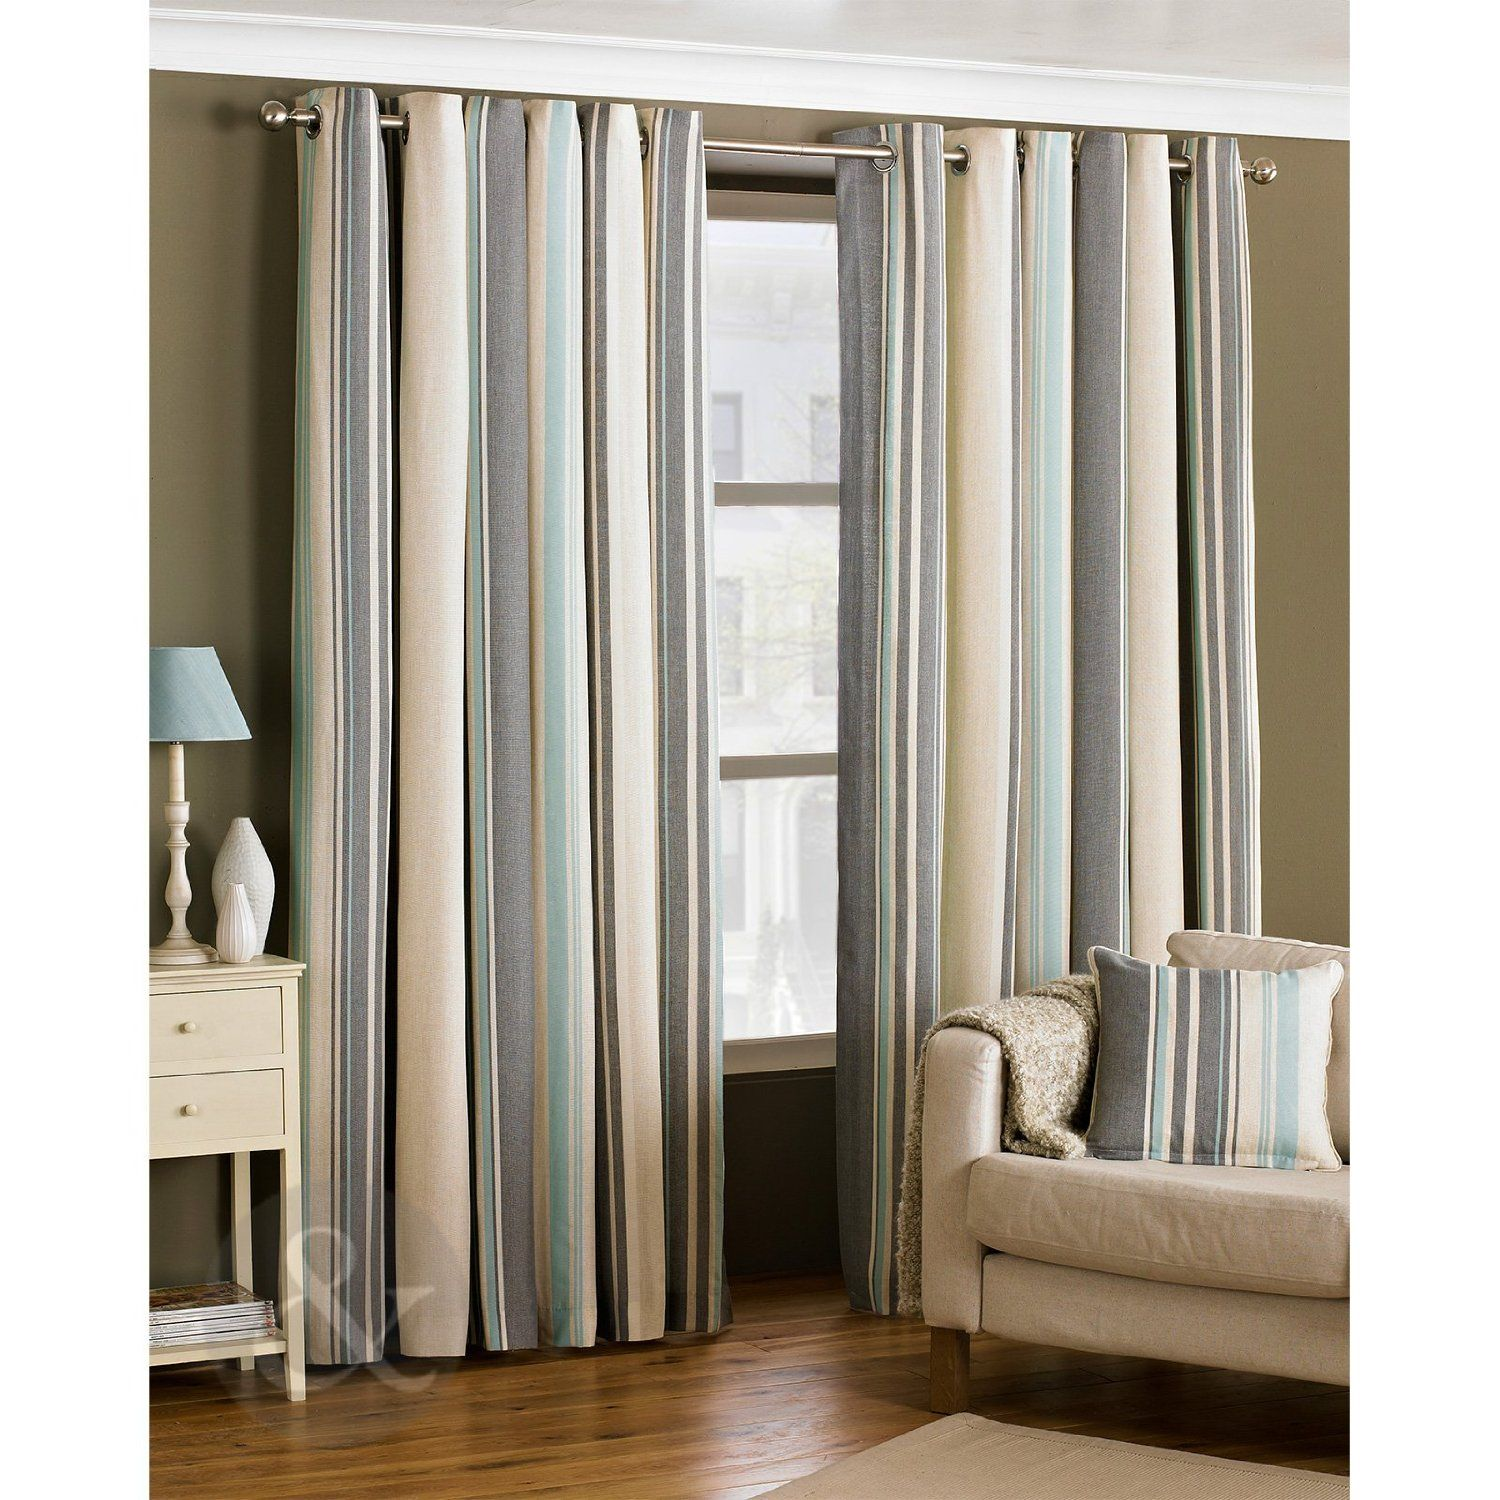 Ready Made Striped Eyelet Curtains Lined Cream Grey Duck Egg Blue Curtain Pair Duck Egg Blue Gr Brown Living Room Duck Egg Curtains Brown Living Room Decor